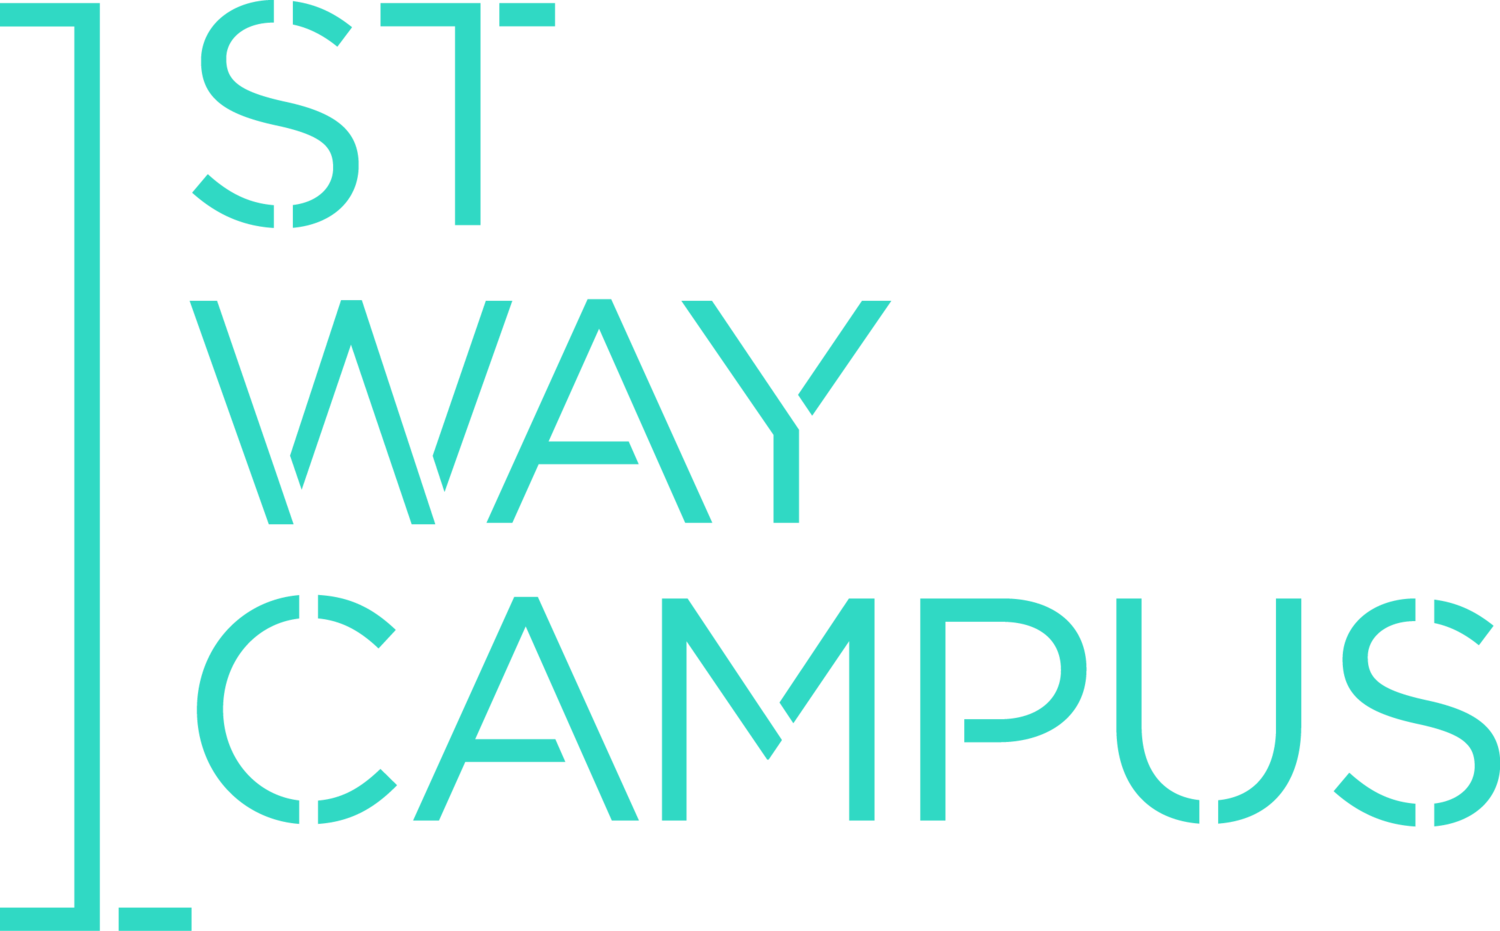 FIRST WAY CAMPUS